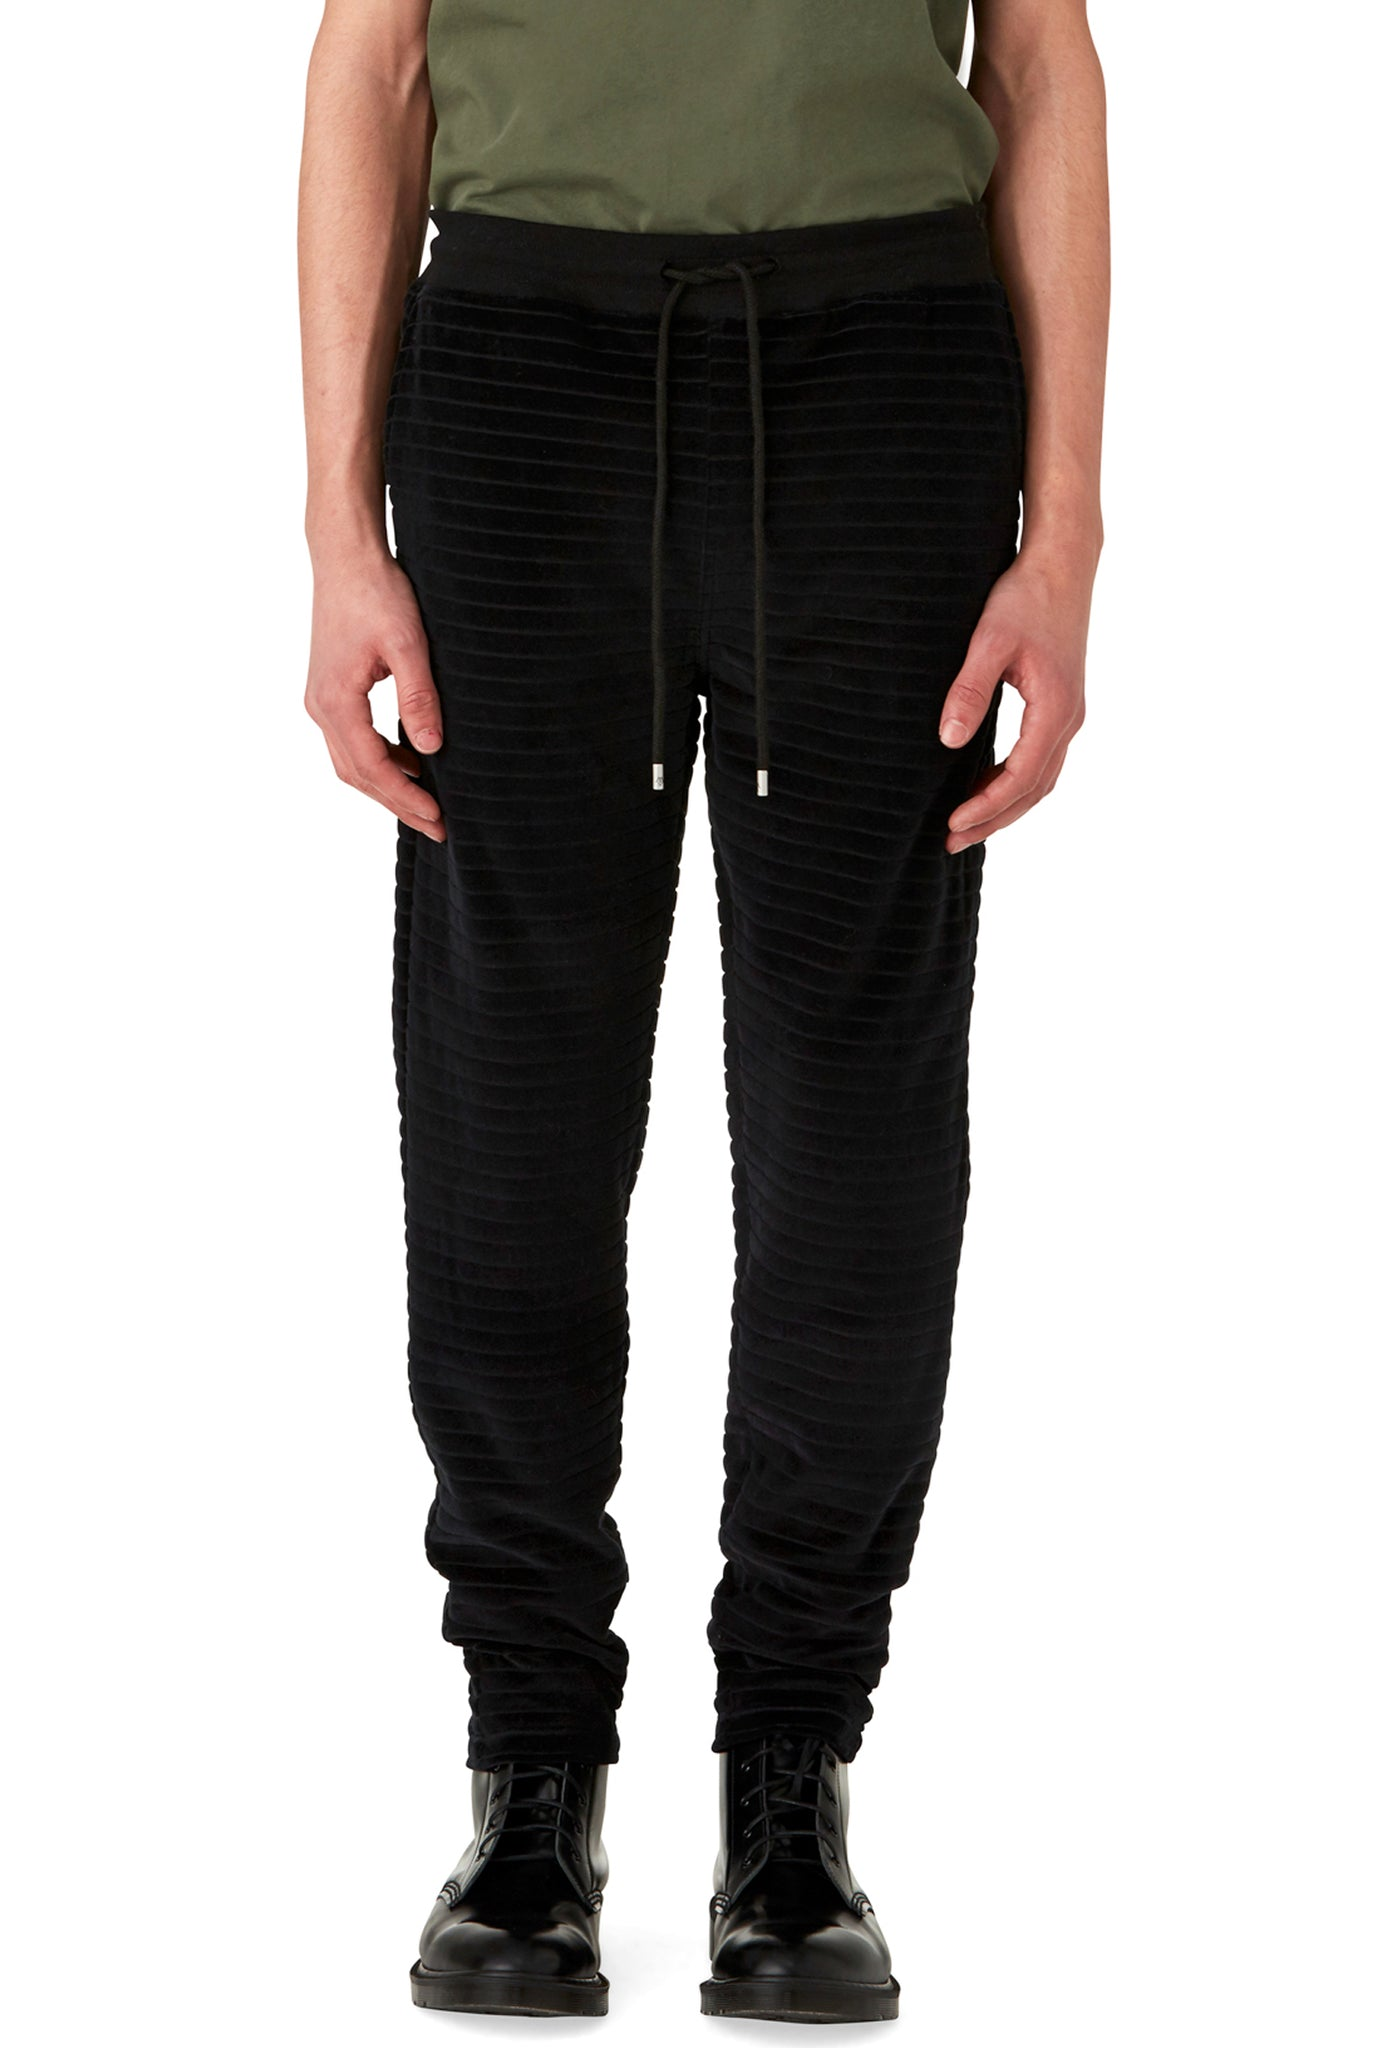 HYDE - VELOUR JOGGER - BLACK